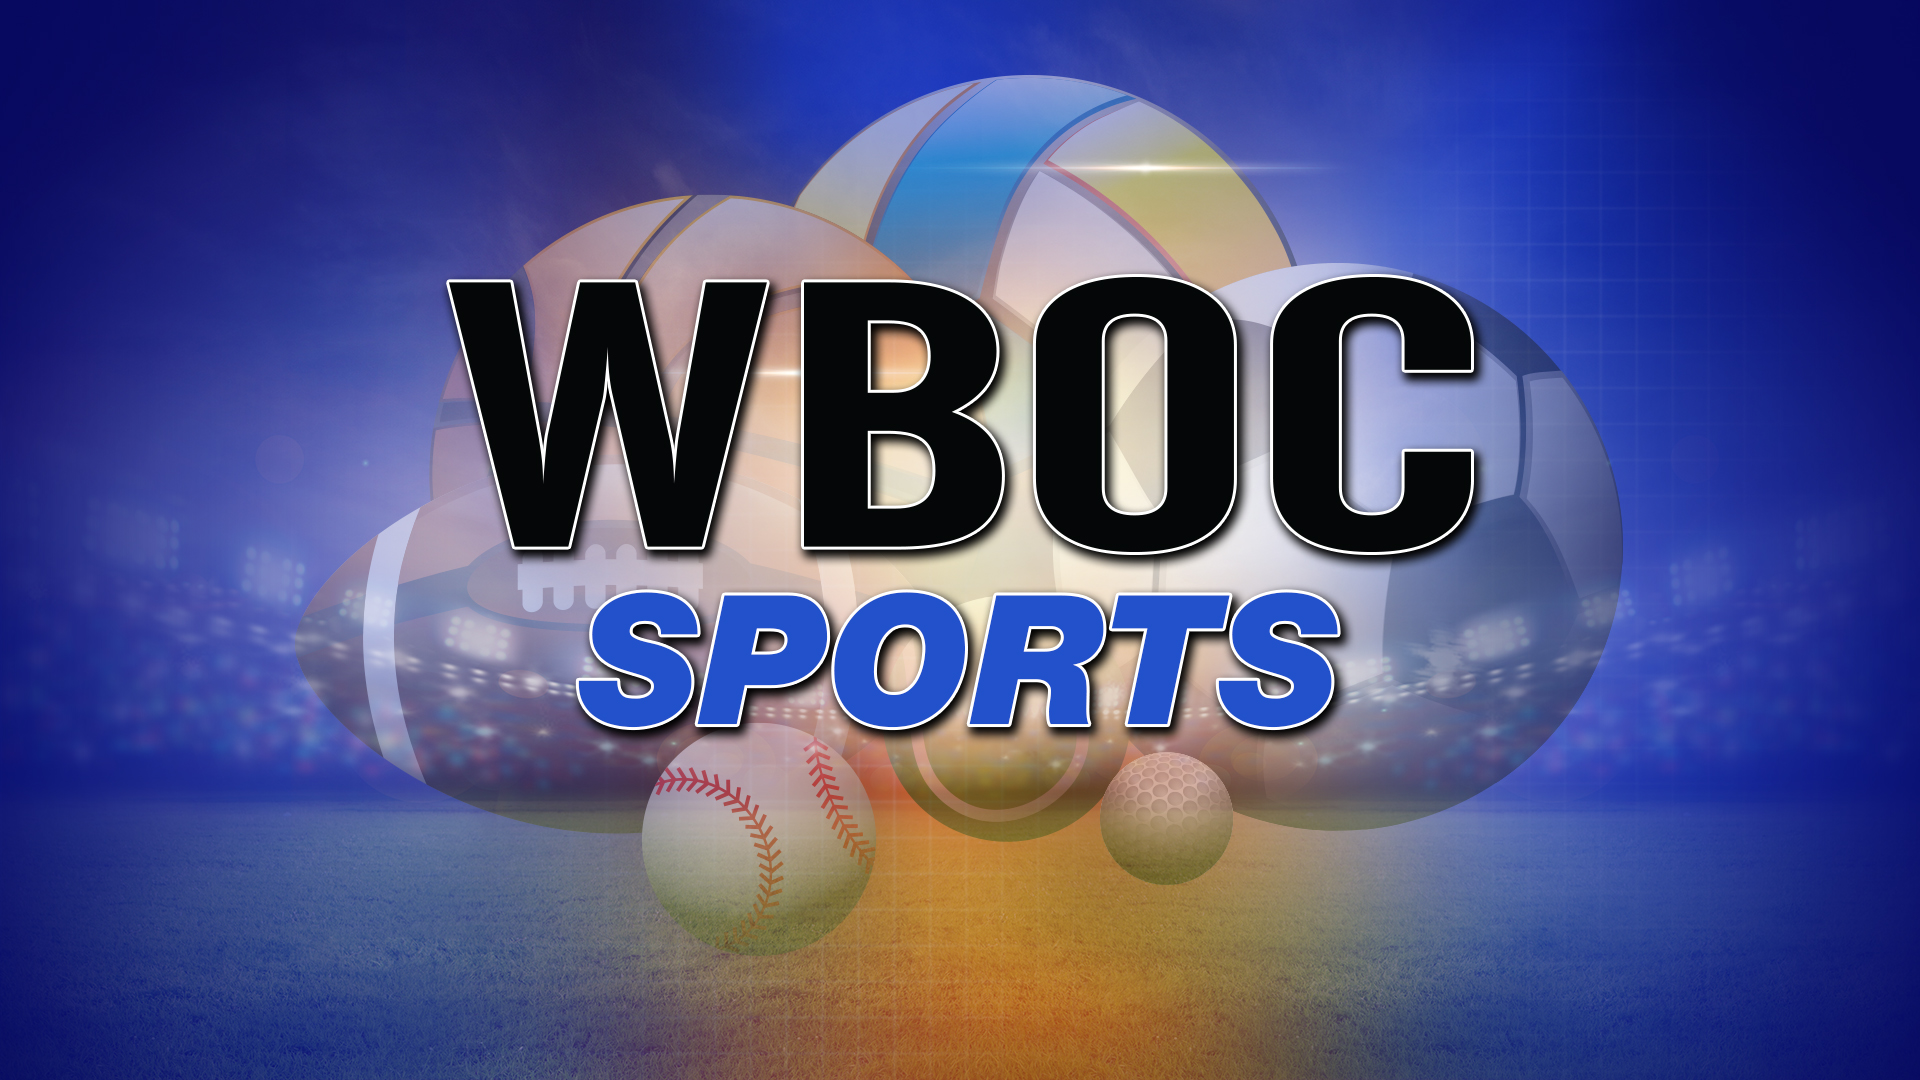 WBOC Sports Report: Wednesday, November 18, 2015